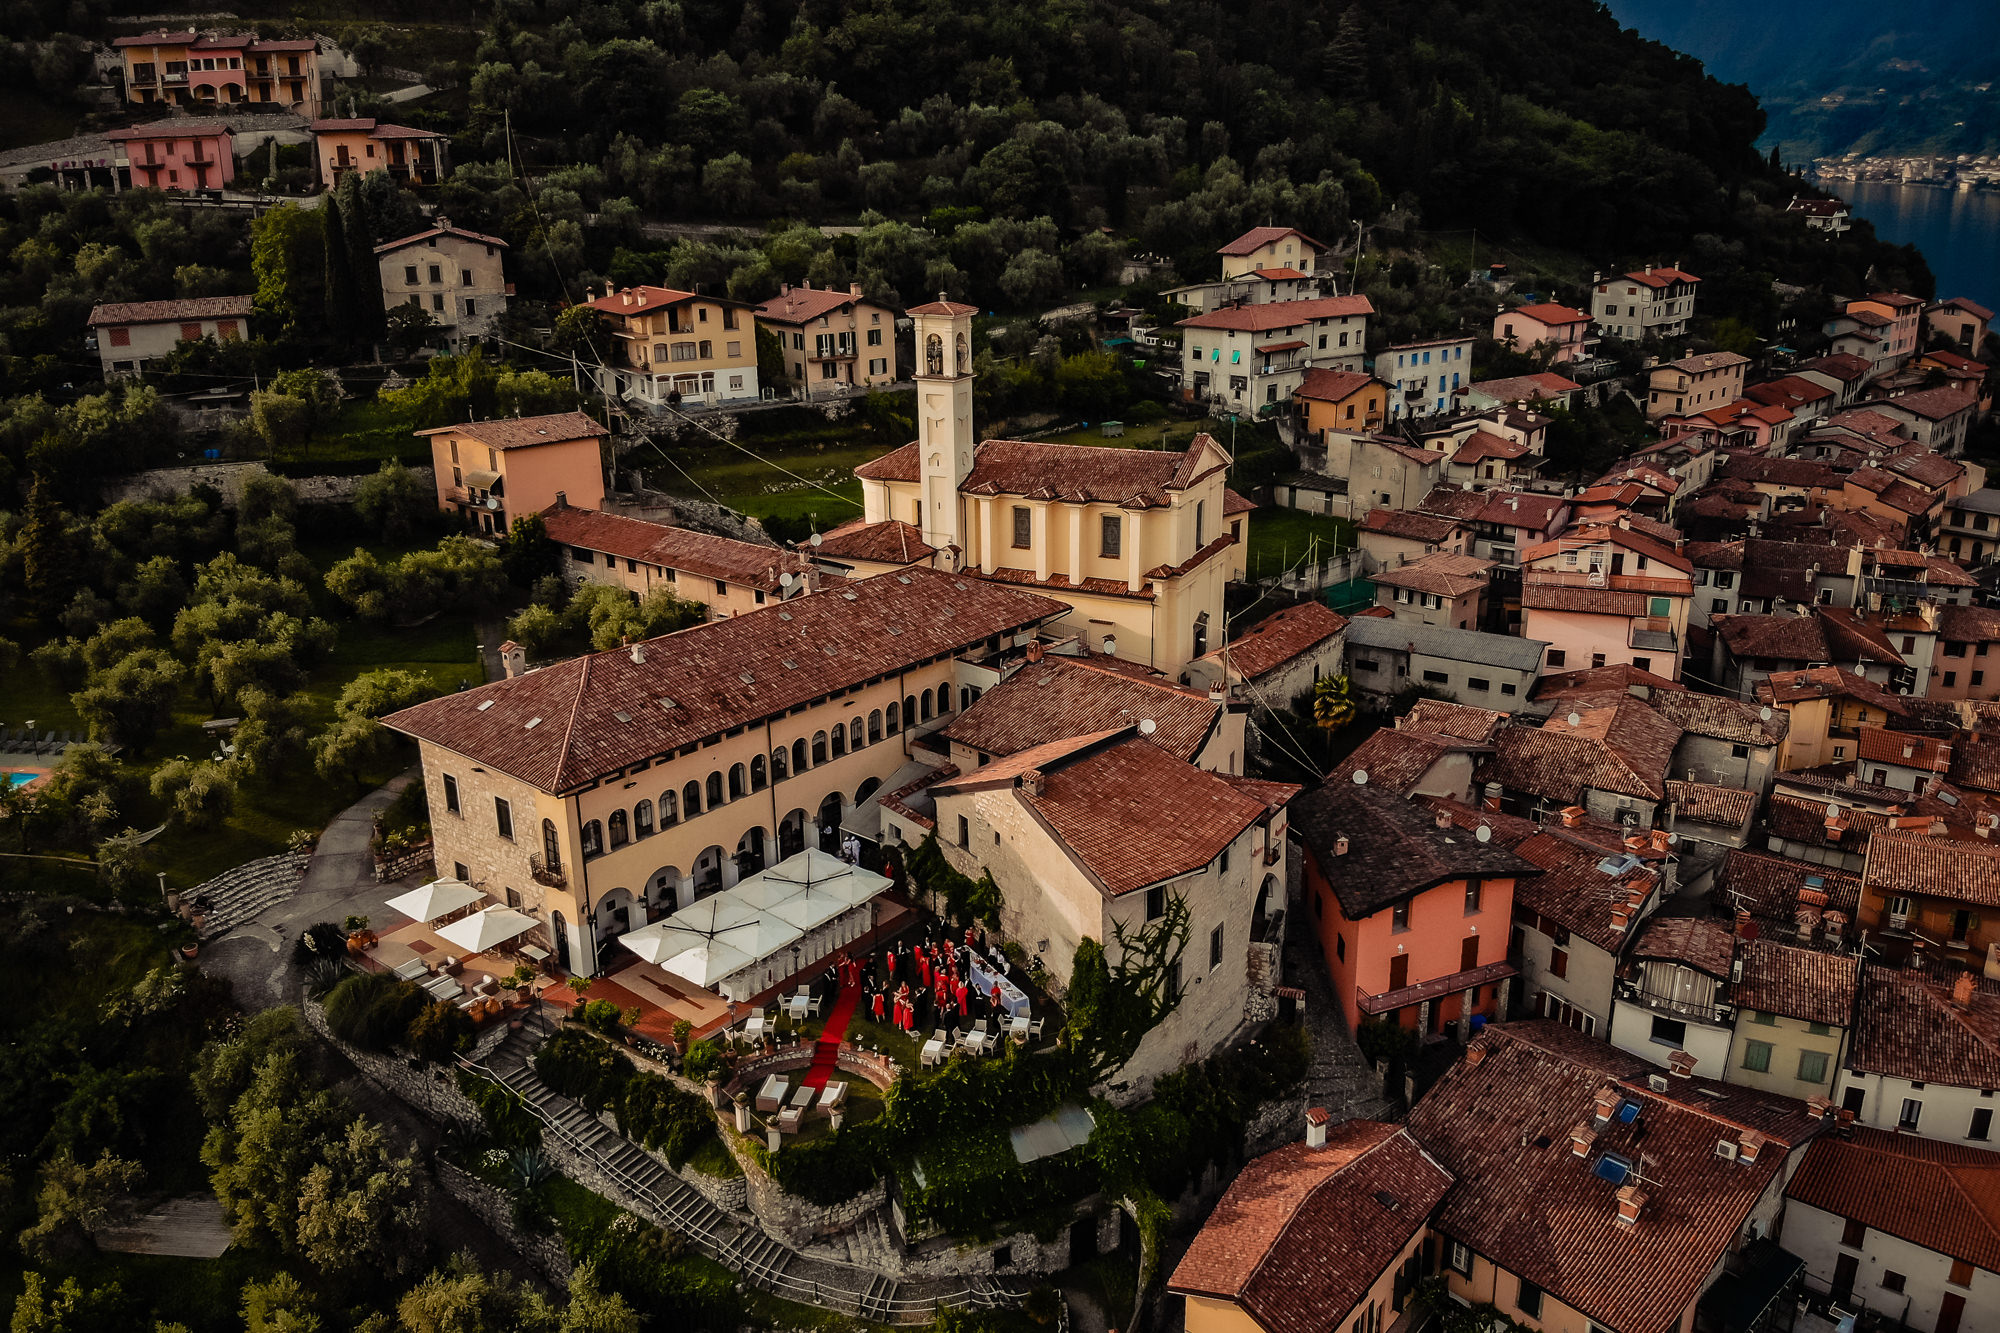 Tuscan village ceremony from above photo by Eppel Photography Netherlands